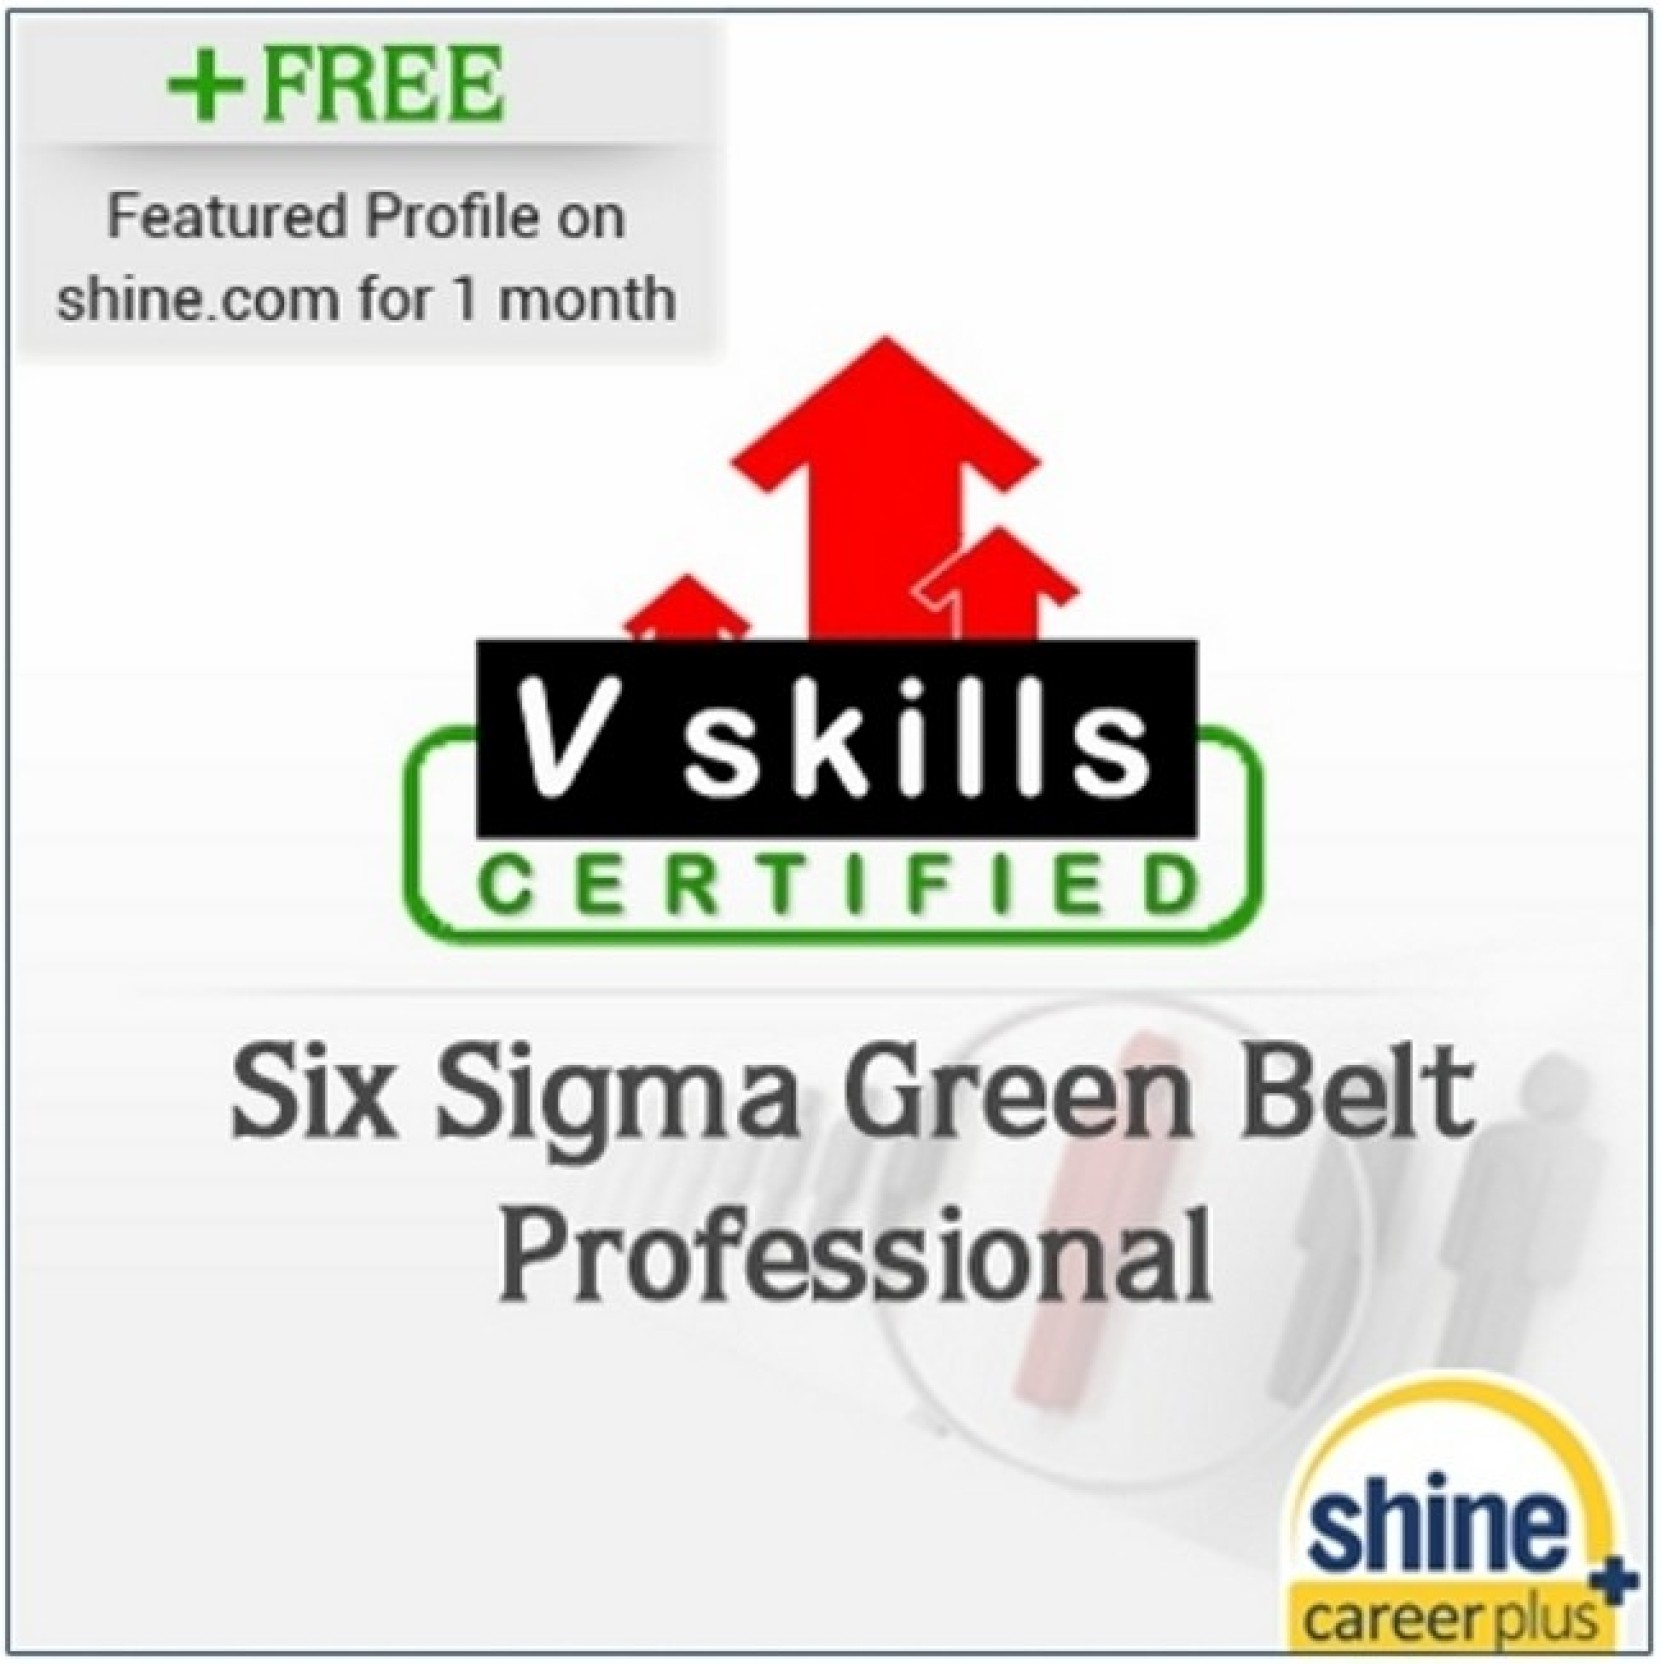 Careerplus v skills certified six sigma green belt professional six sigma green belt professional certification course share xflitez Image collections